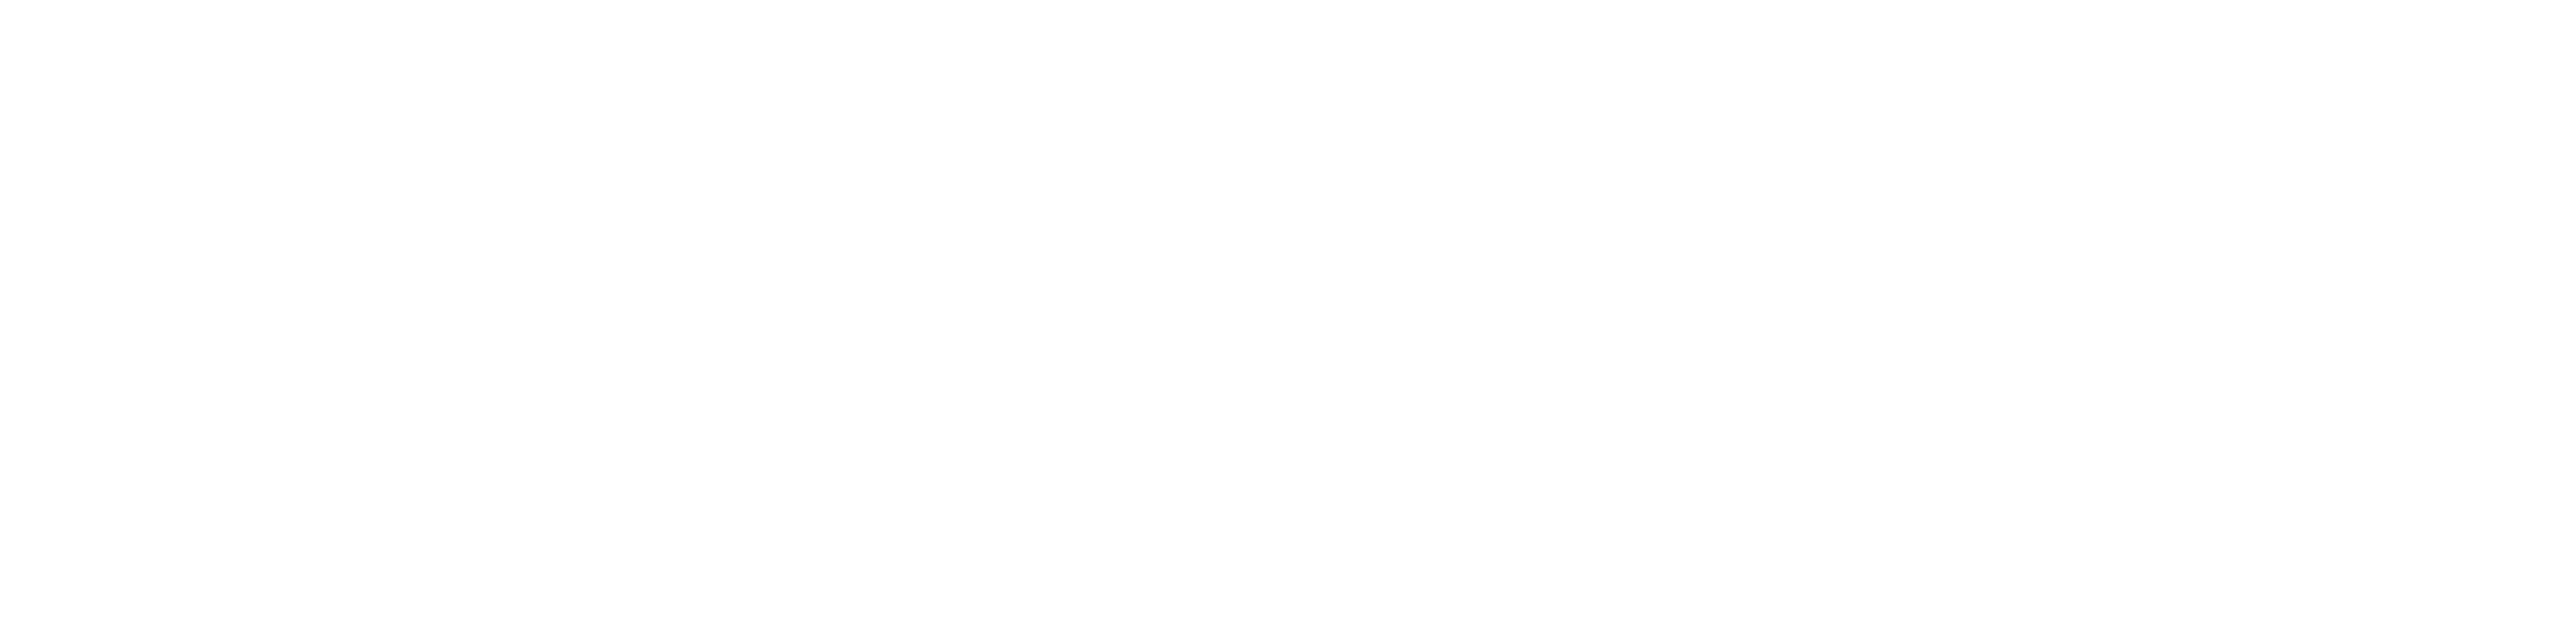 AWS_Summit_Logo-Lockup_Mexico-City_3200x800 (1)